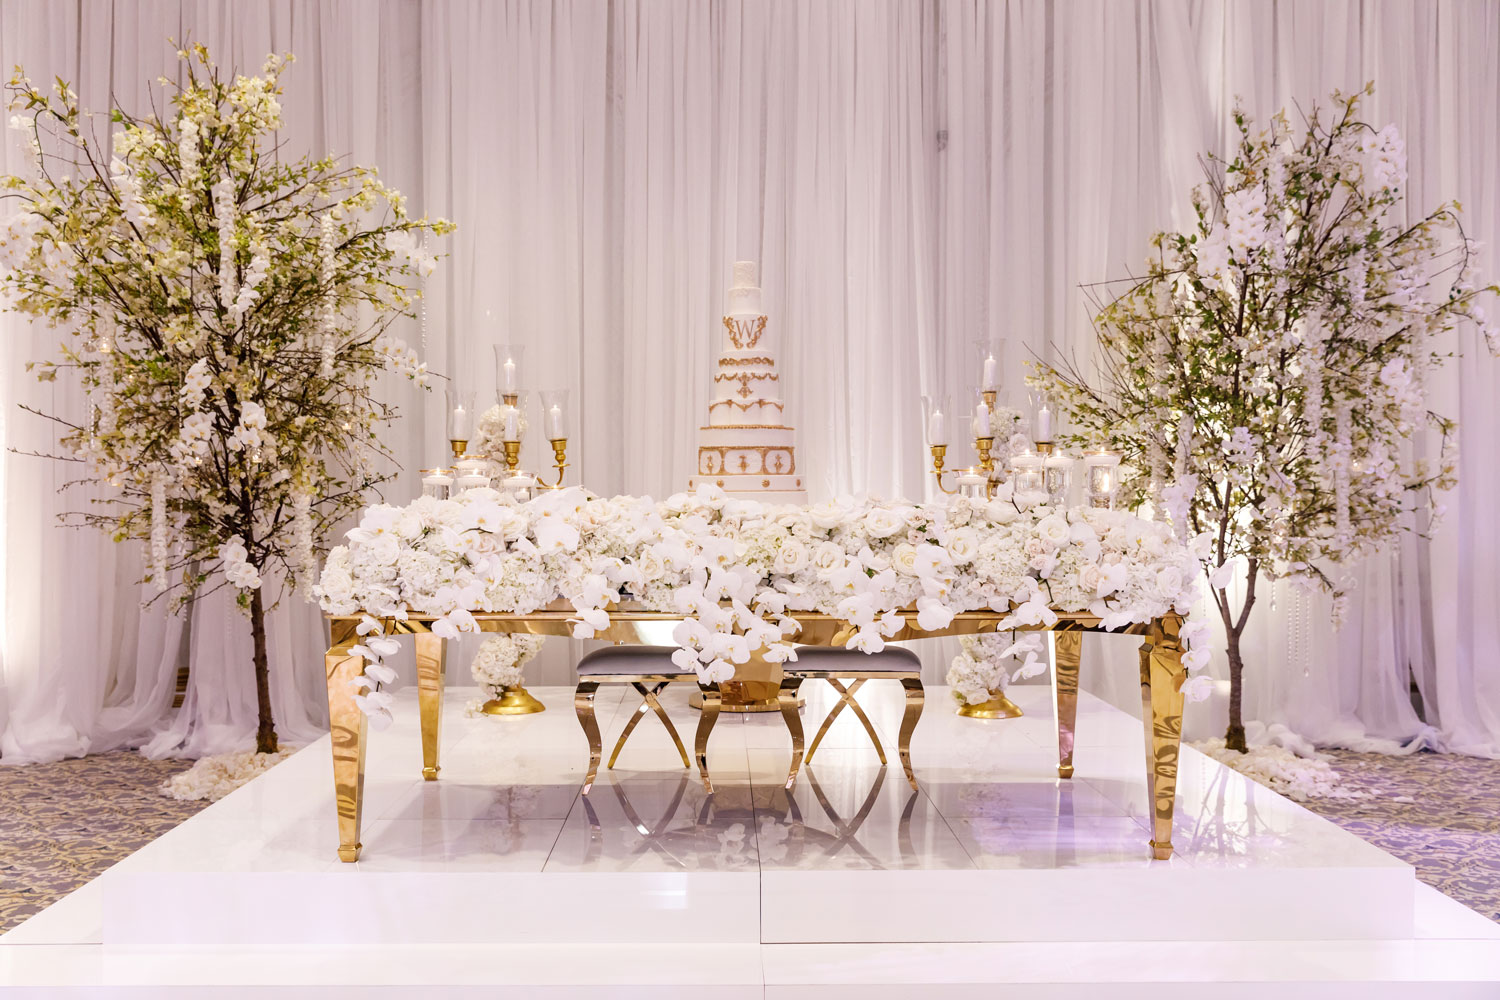 choosing between a buffet or sit-down dinner for your wedding